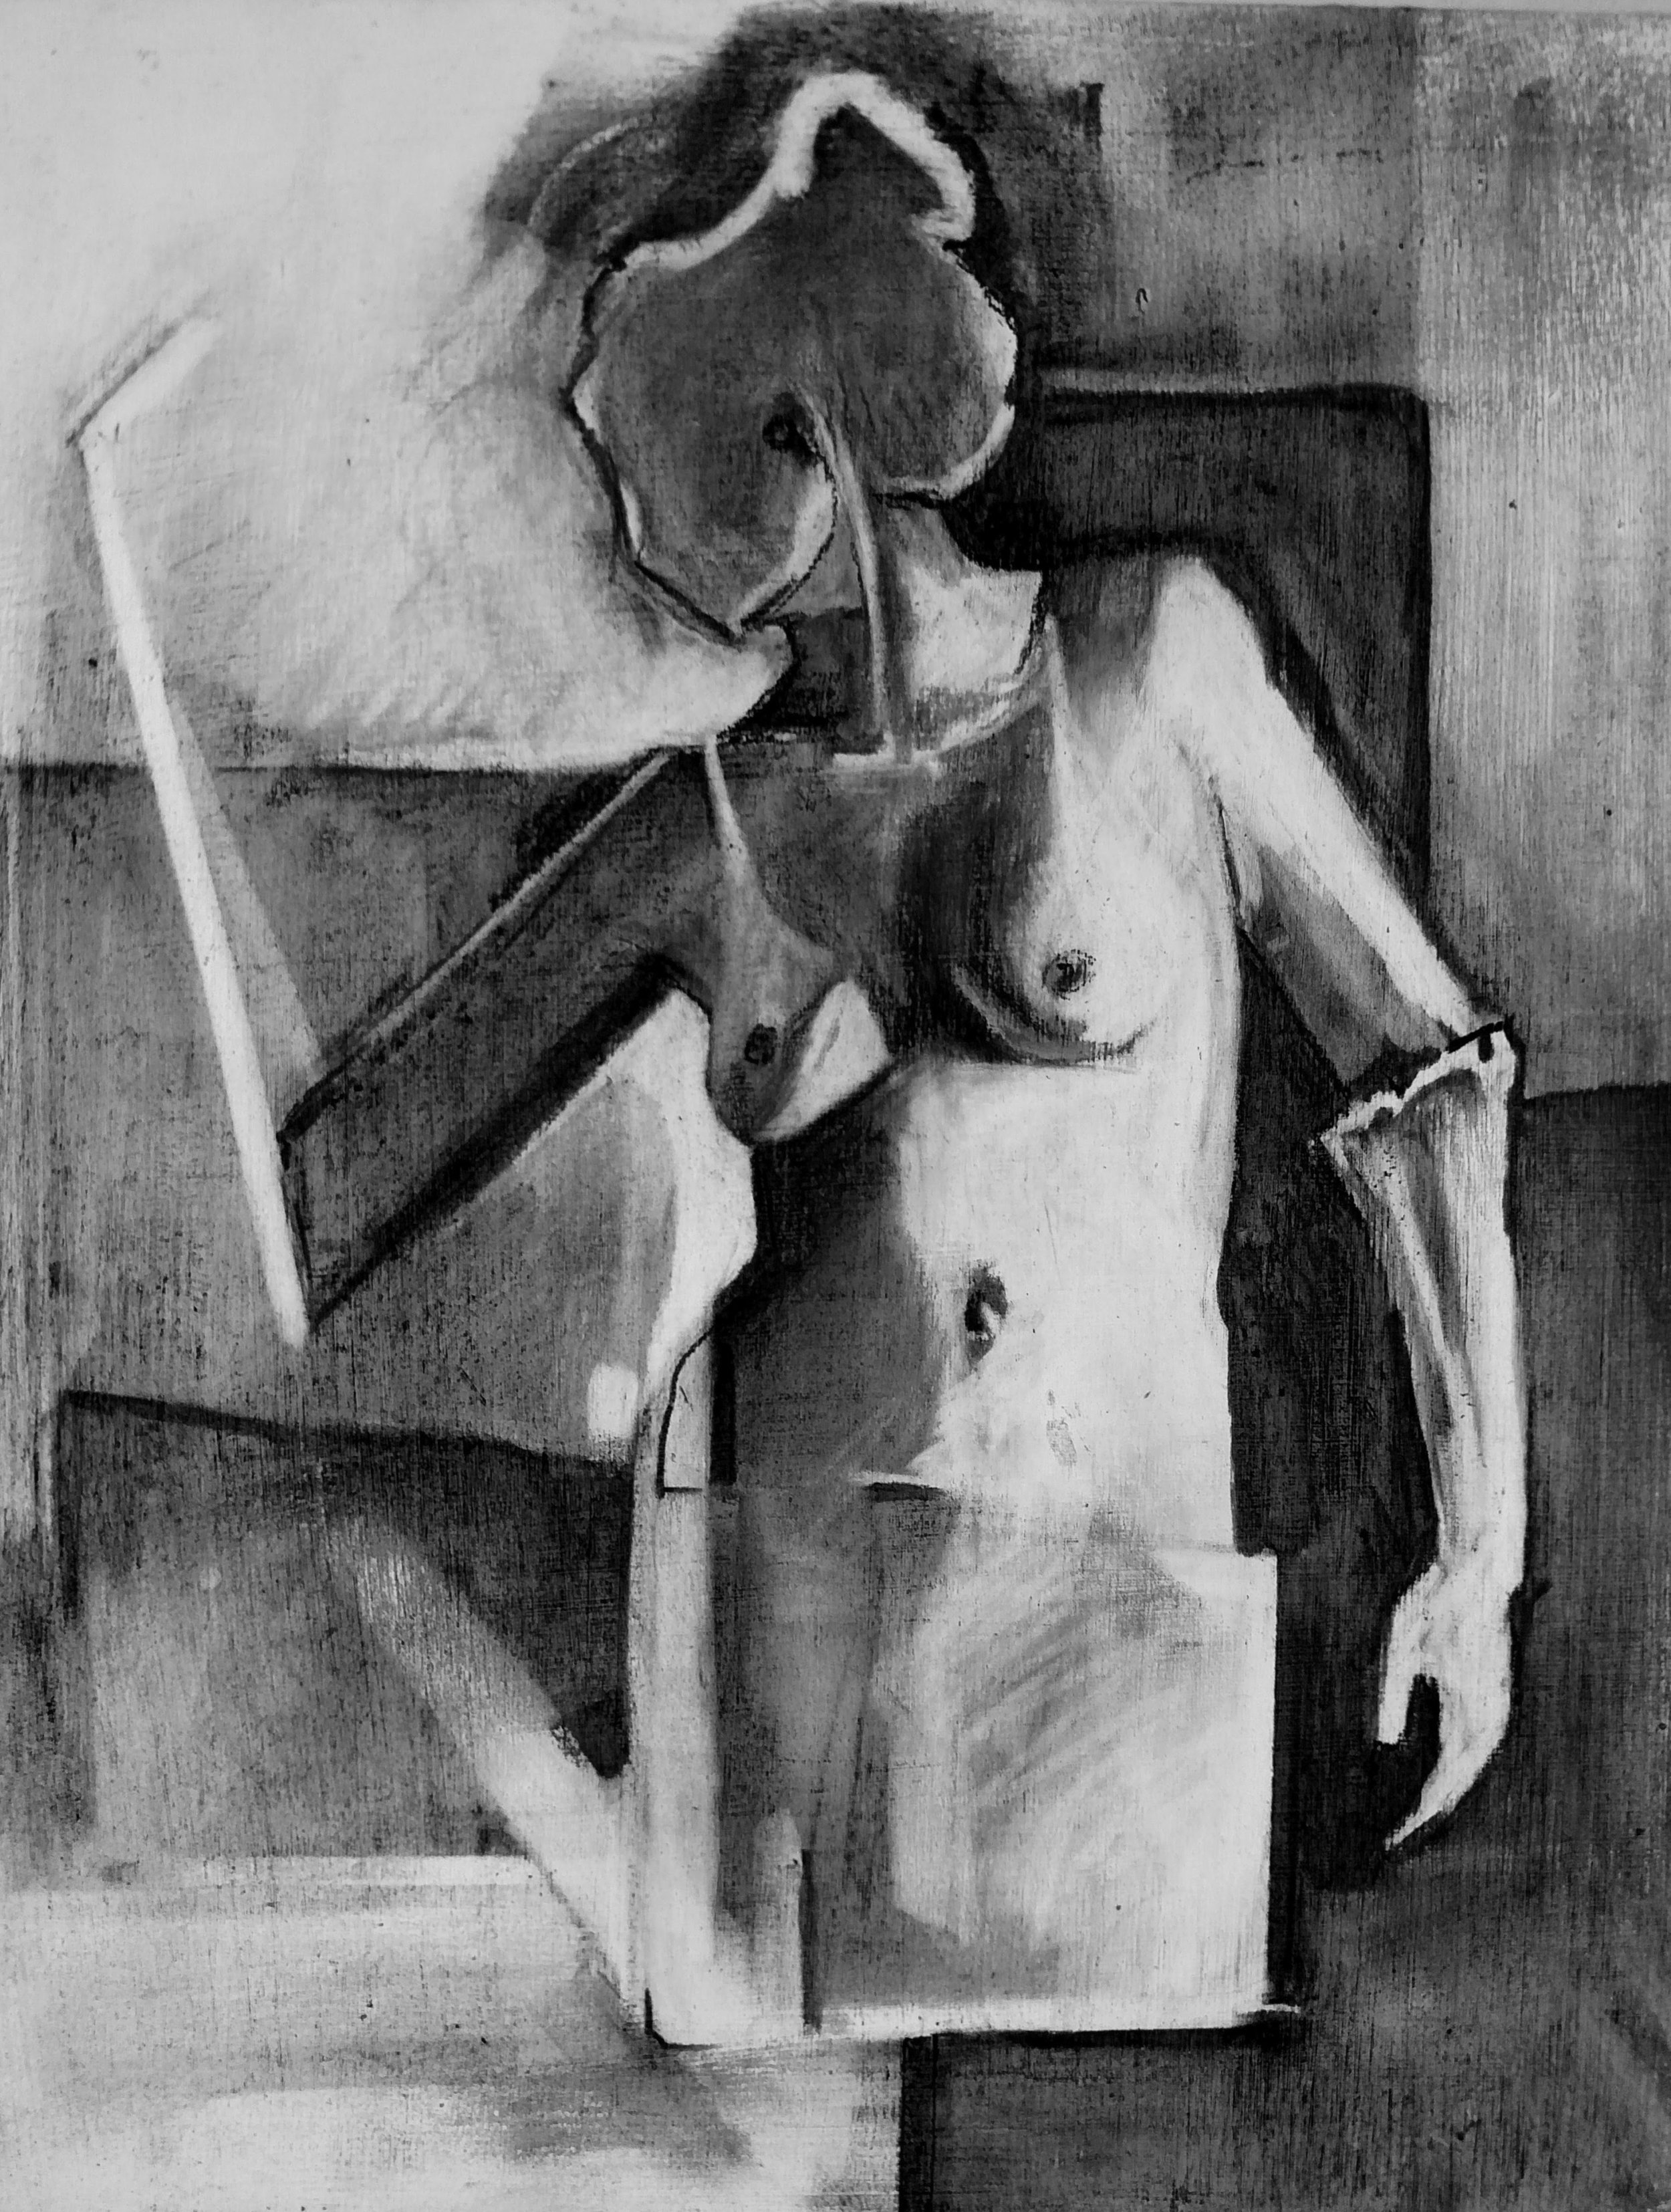 Nude Study 4    Charcoal on Gessoed Wood Panel  2016 7in x 9in